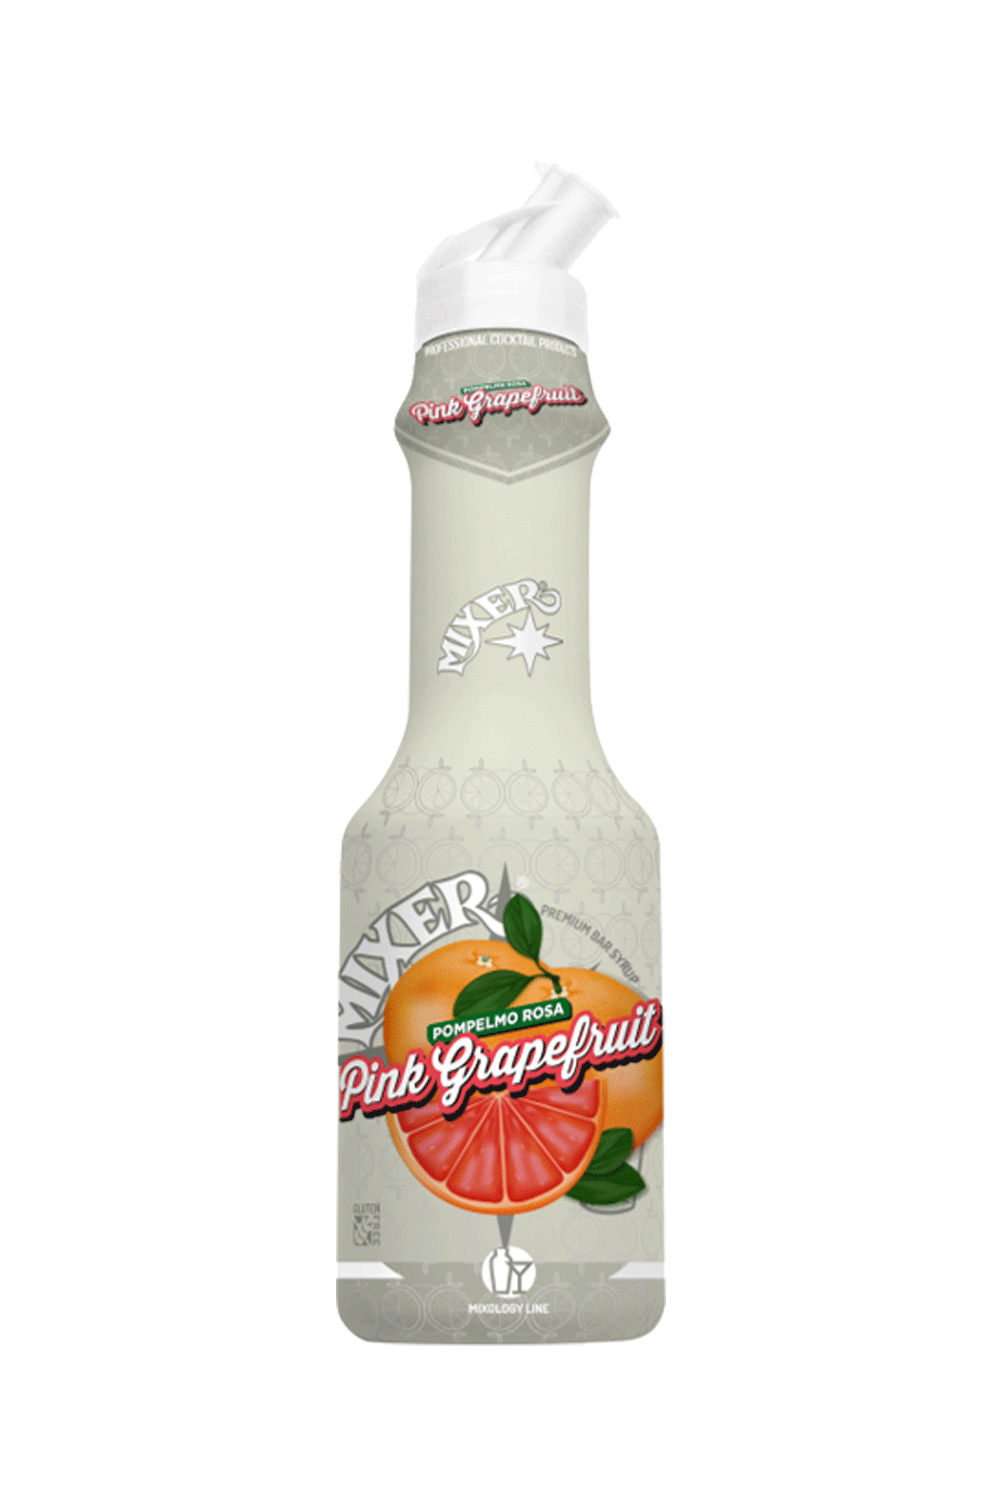 Pompelmo rosa – Pink grapefruit syrup